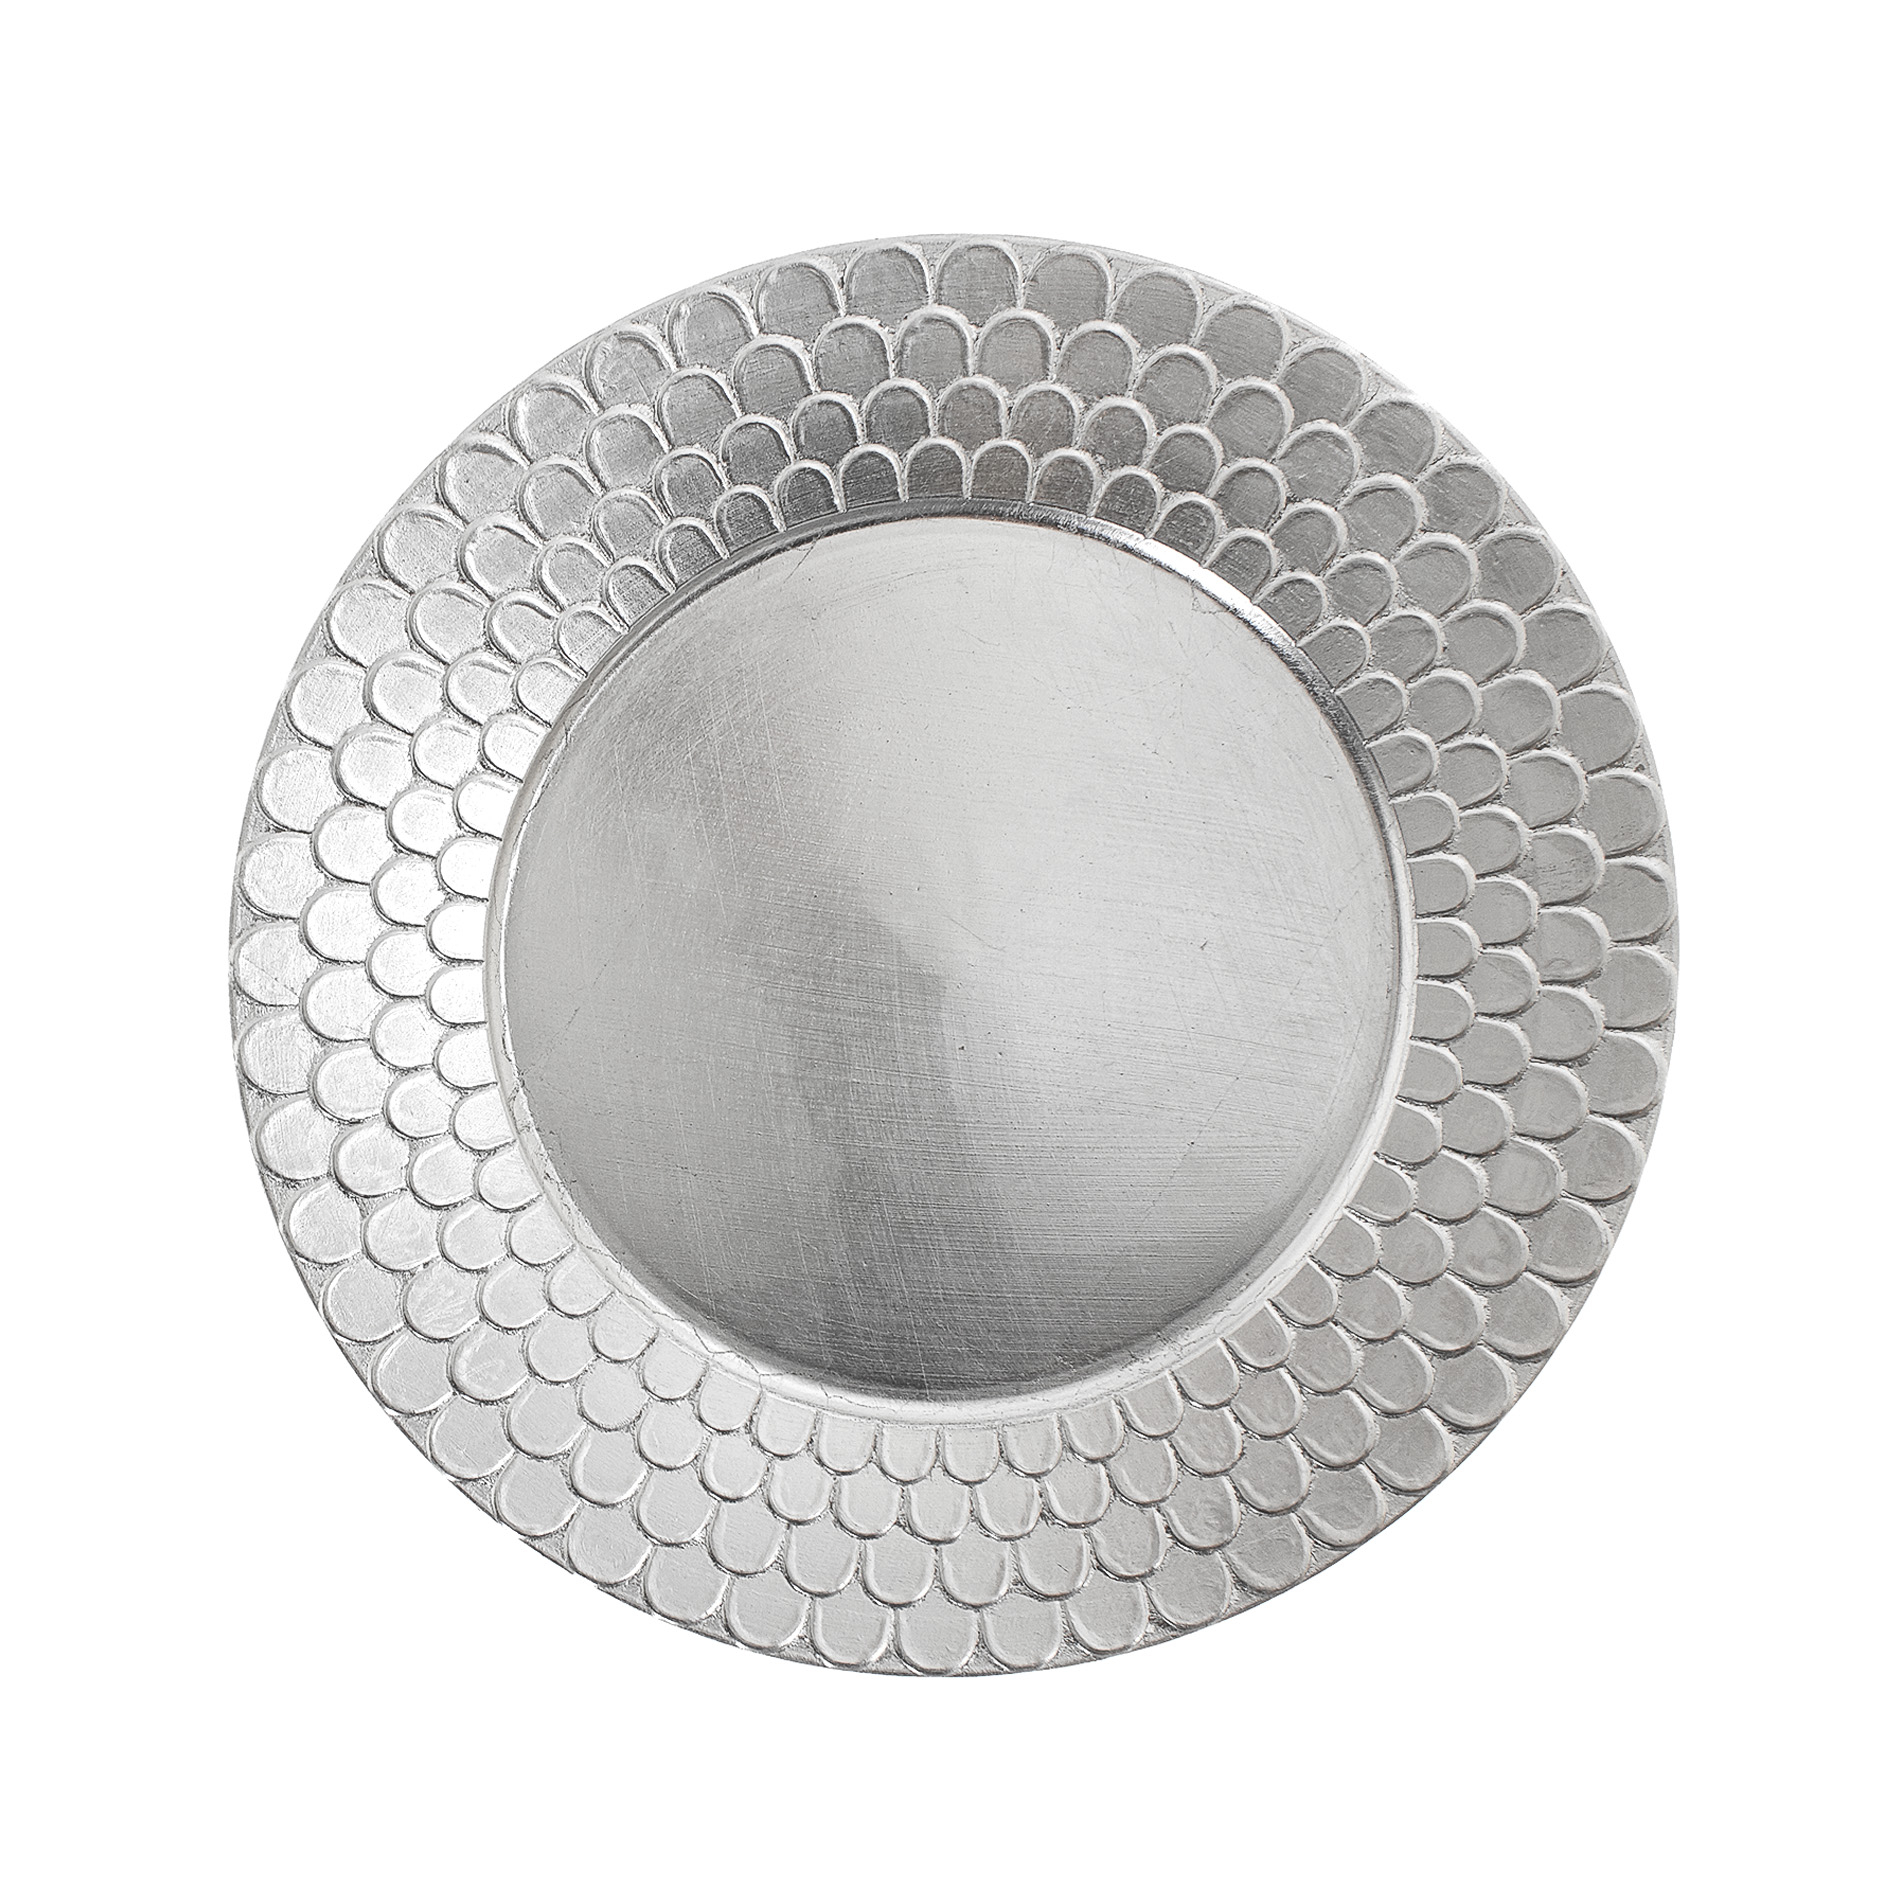 Silver plastic charger plate with decorated edging  sc 1 st  Coincasa & Silver plastic charger plate with decorated edging - coincasa